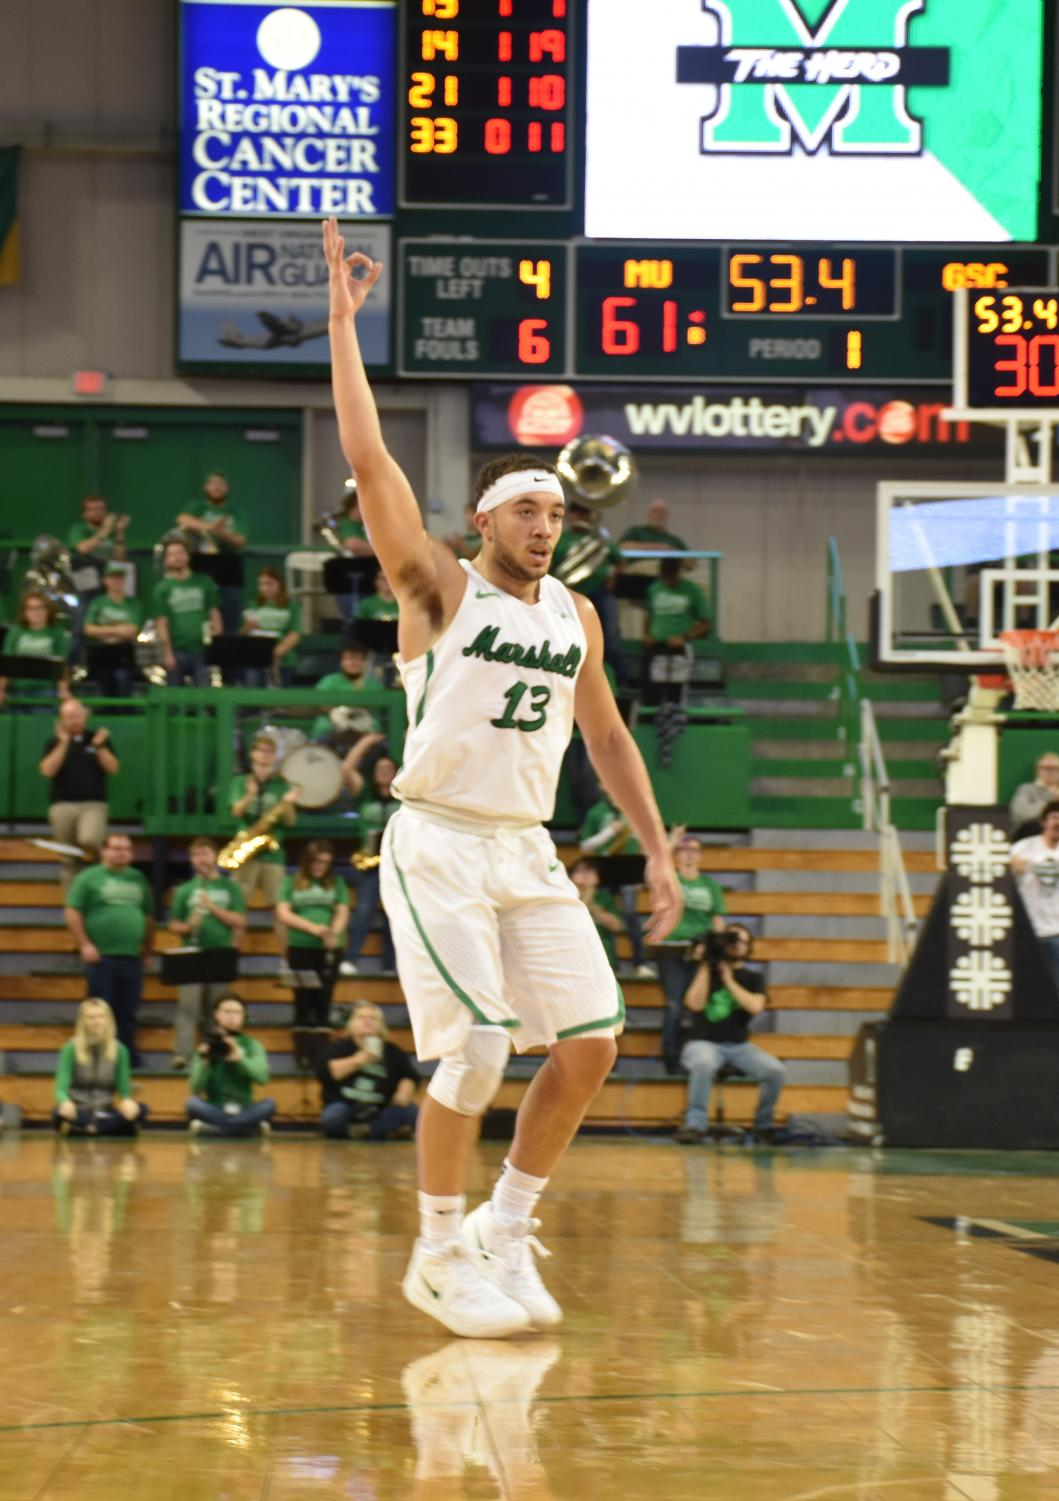 Sophomore guard Jarrod West holds up a hand gesture after hitting a 3-pointer in Marshall's 113-108 win over Glenville State. The Herd plays another exhibition Thursday before beginning the regular season Nov. 7 at Eastern Kentucky.